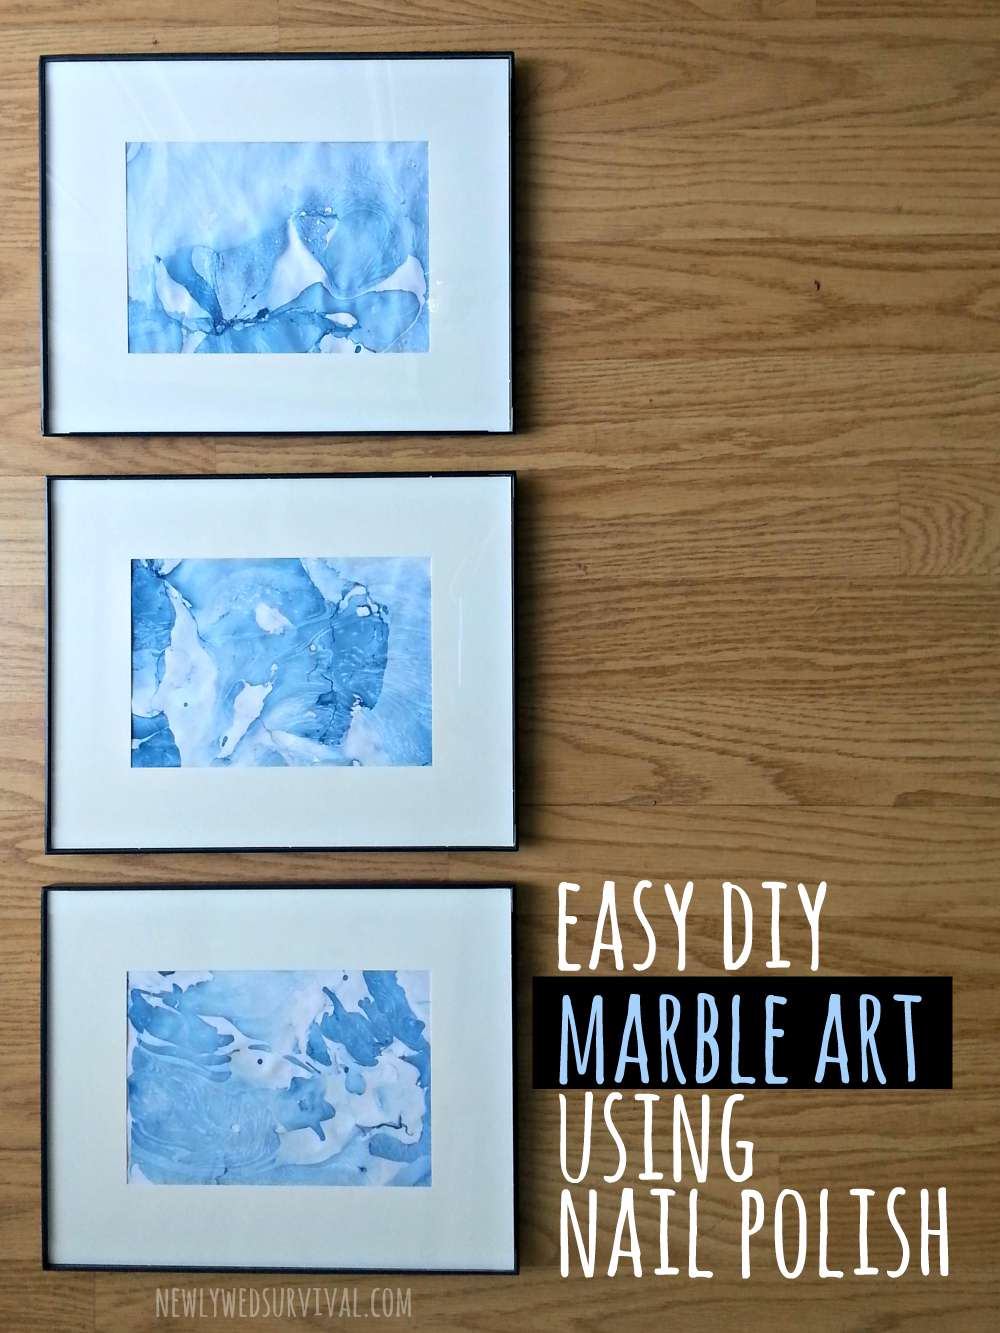 Easy DIY Marble Art Using Nail Polish #CraftedExperience #CollectiveBias